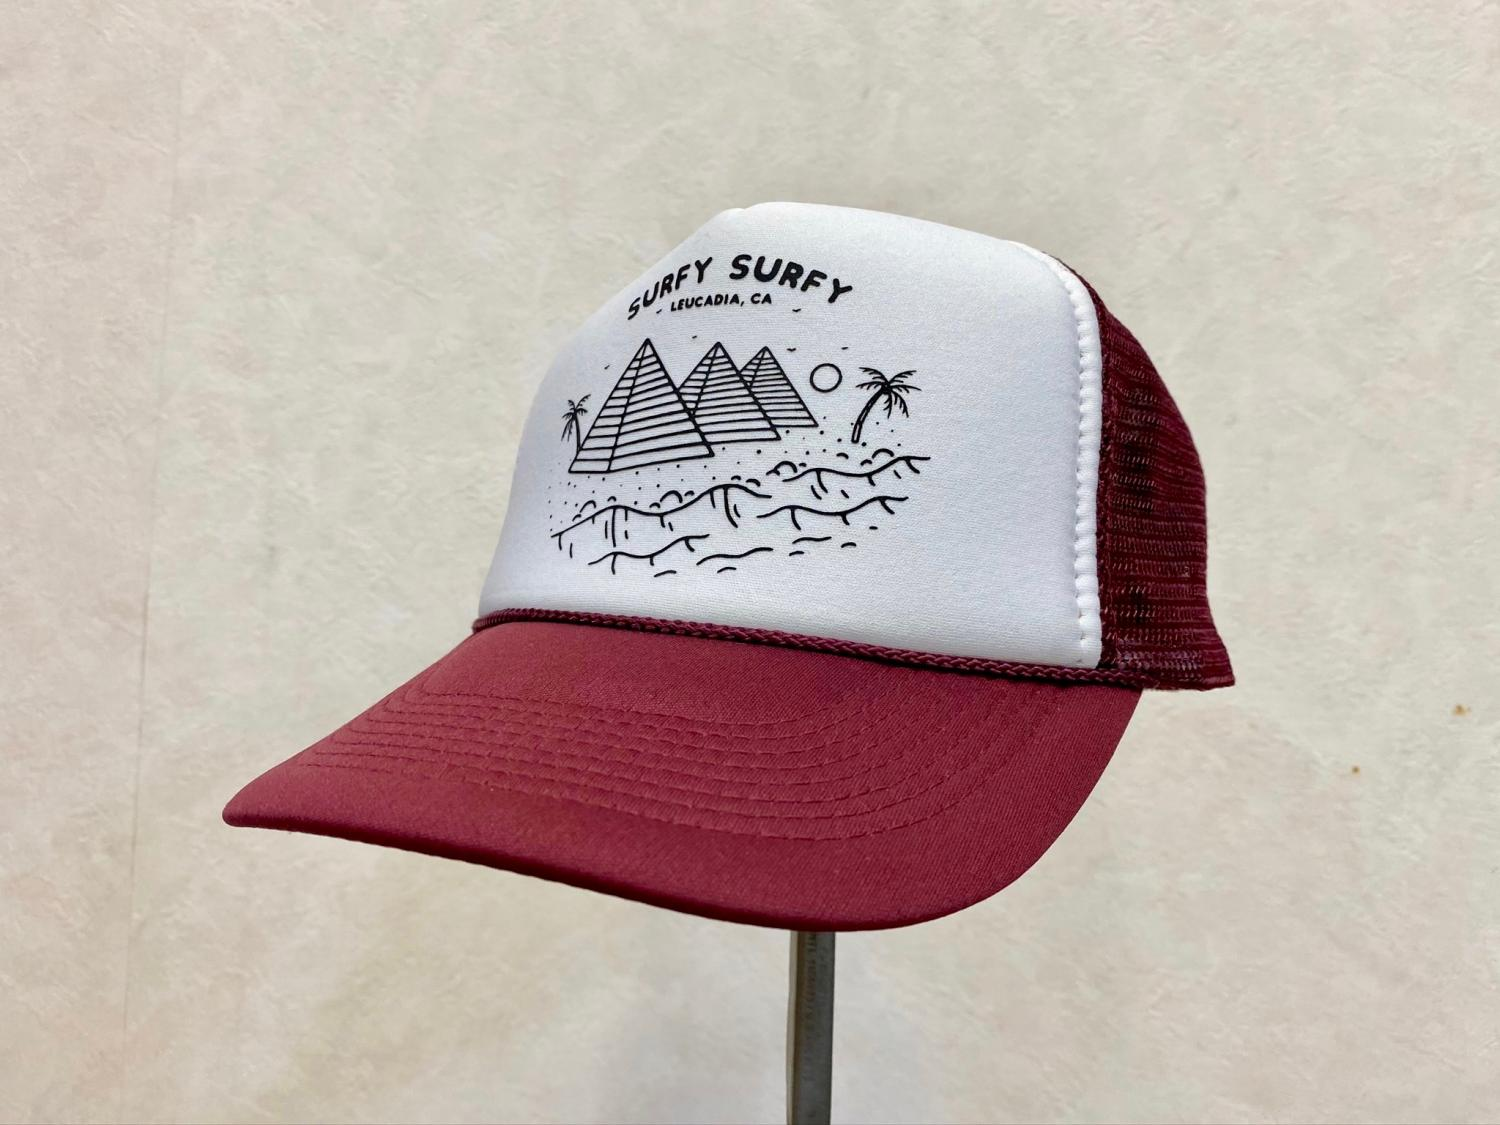 GREAT PYRAMIDS OF SURFY TRUCKER HAT